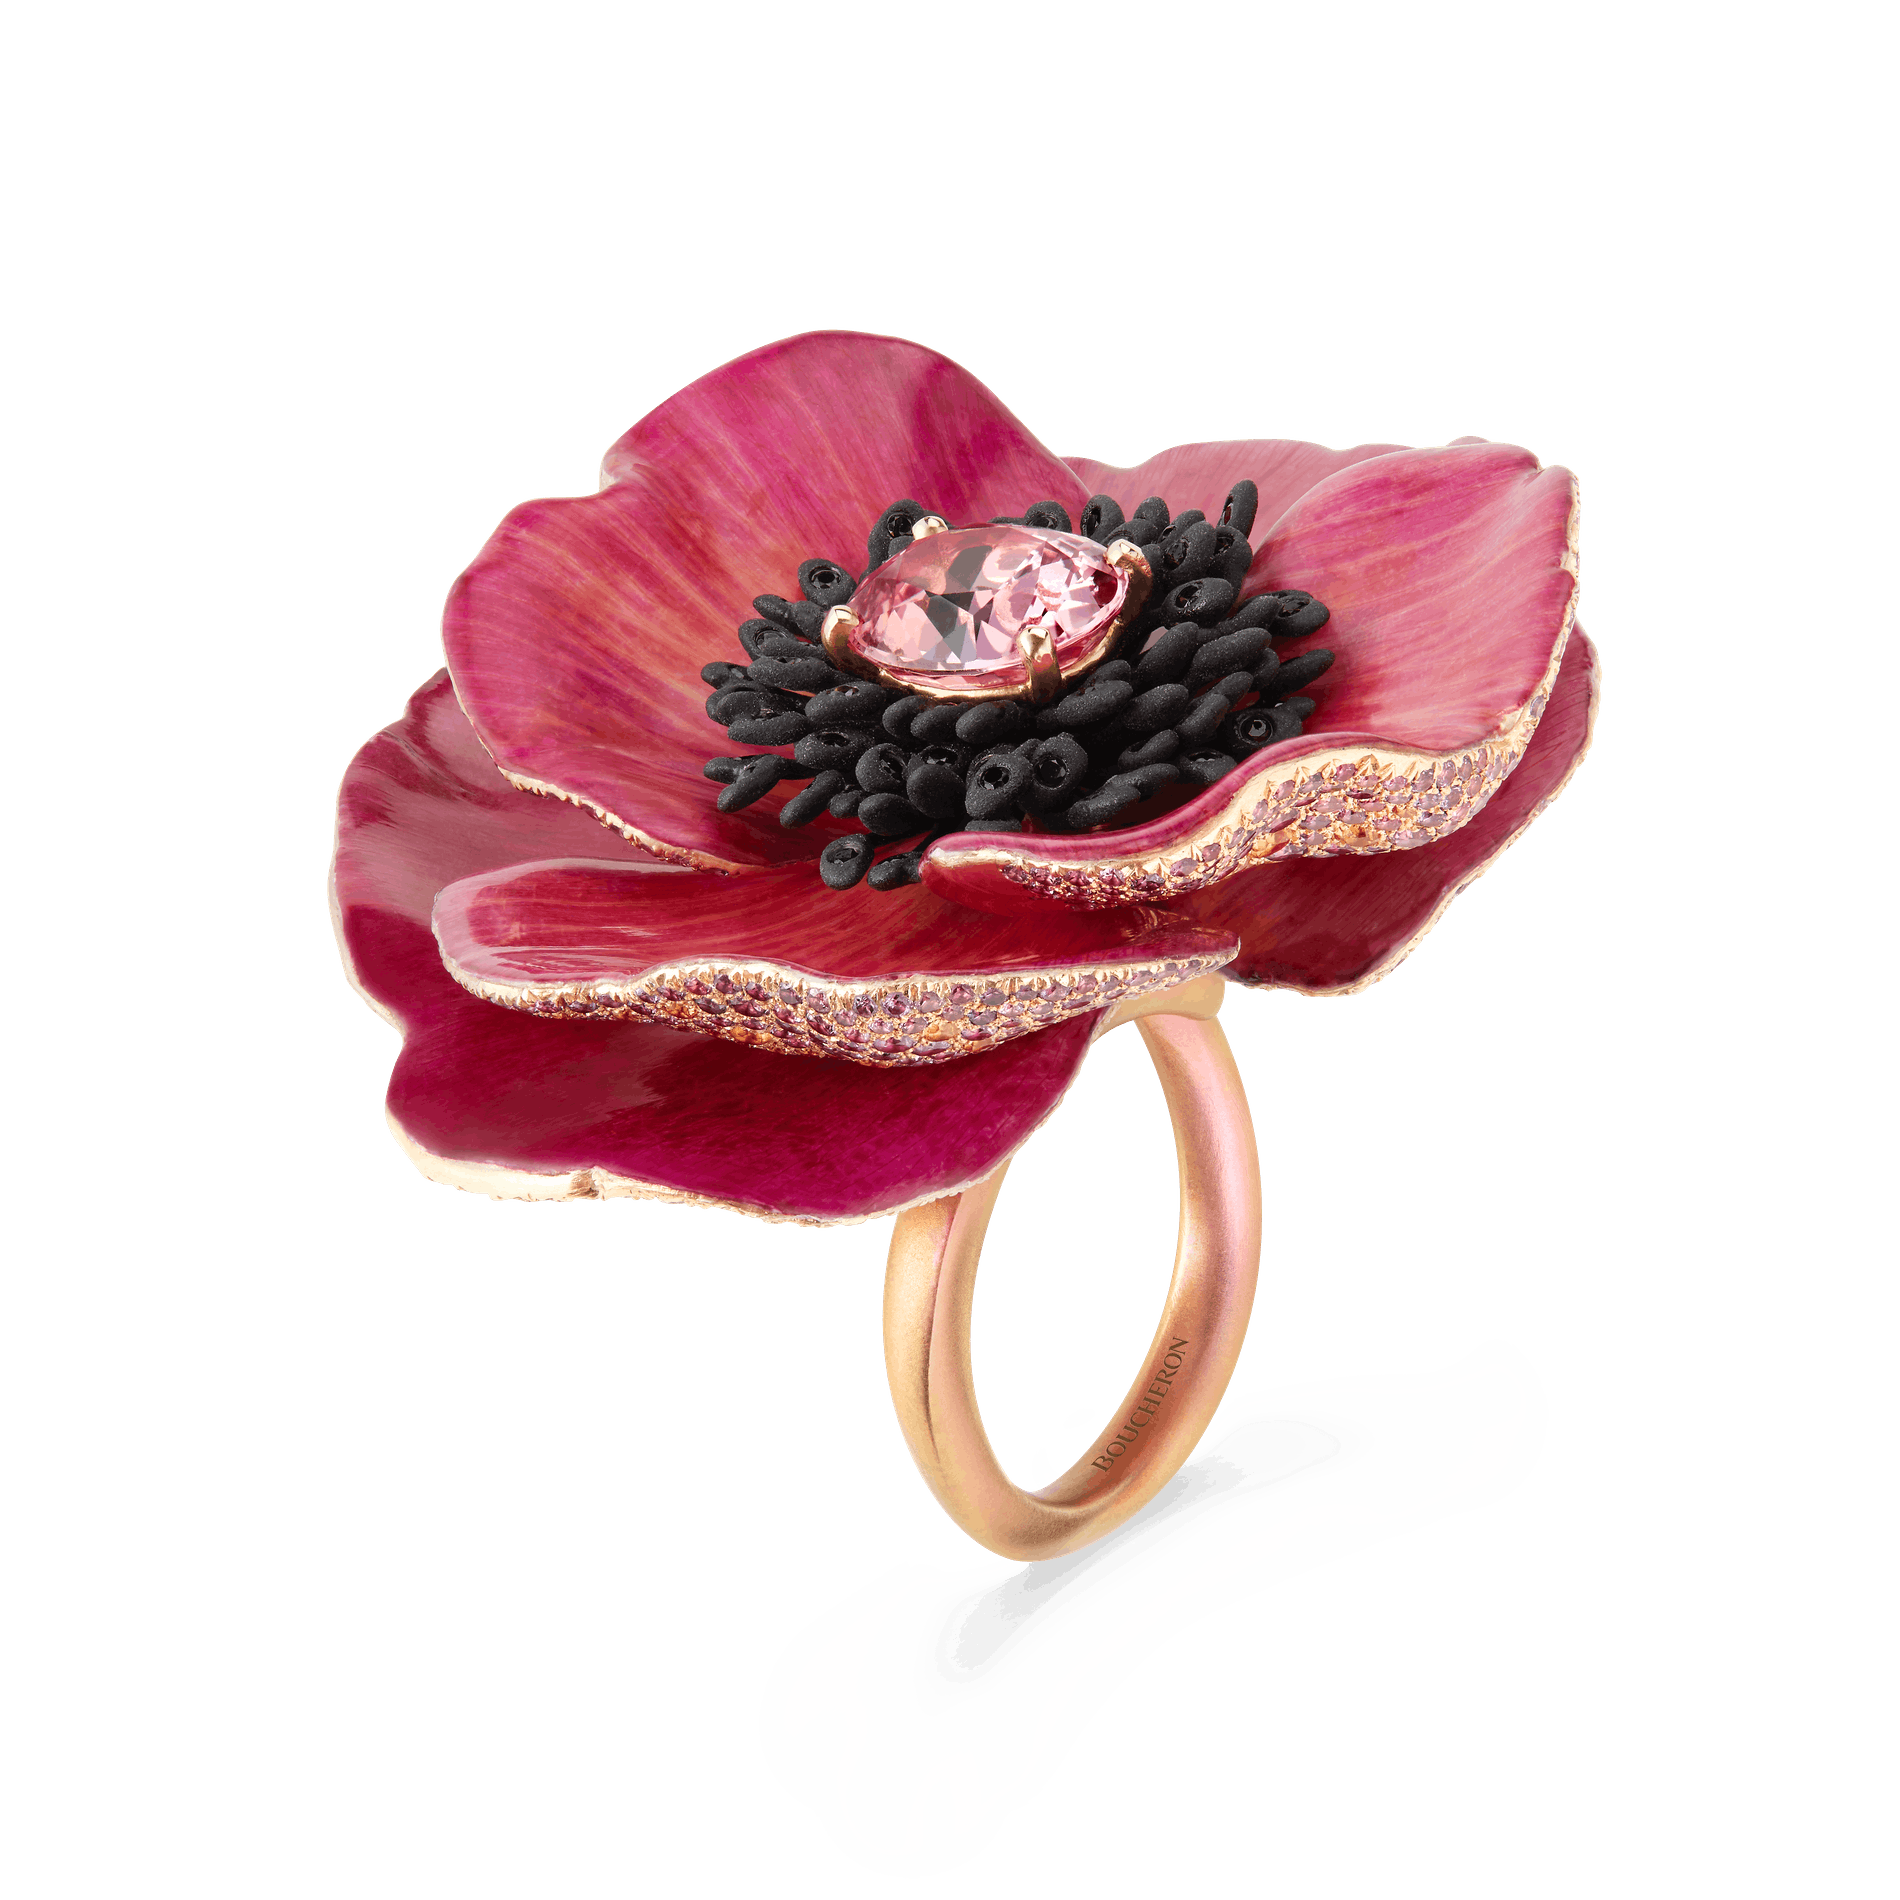 1576509917537140 boucheron nature triomphante ring fleur eternelle with natural petals set with a 4.16 ct oval padparadscha sapphire paved with black spinels multi colored sapphires on titanium and pink gold2